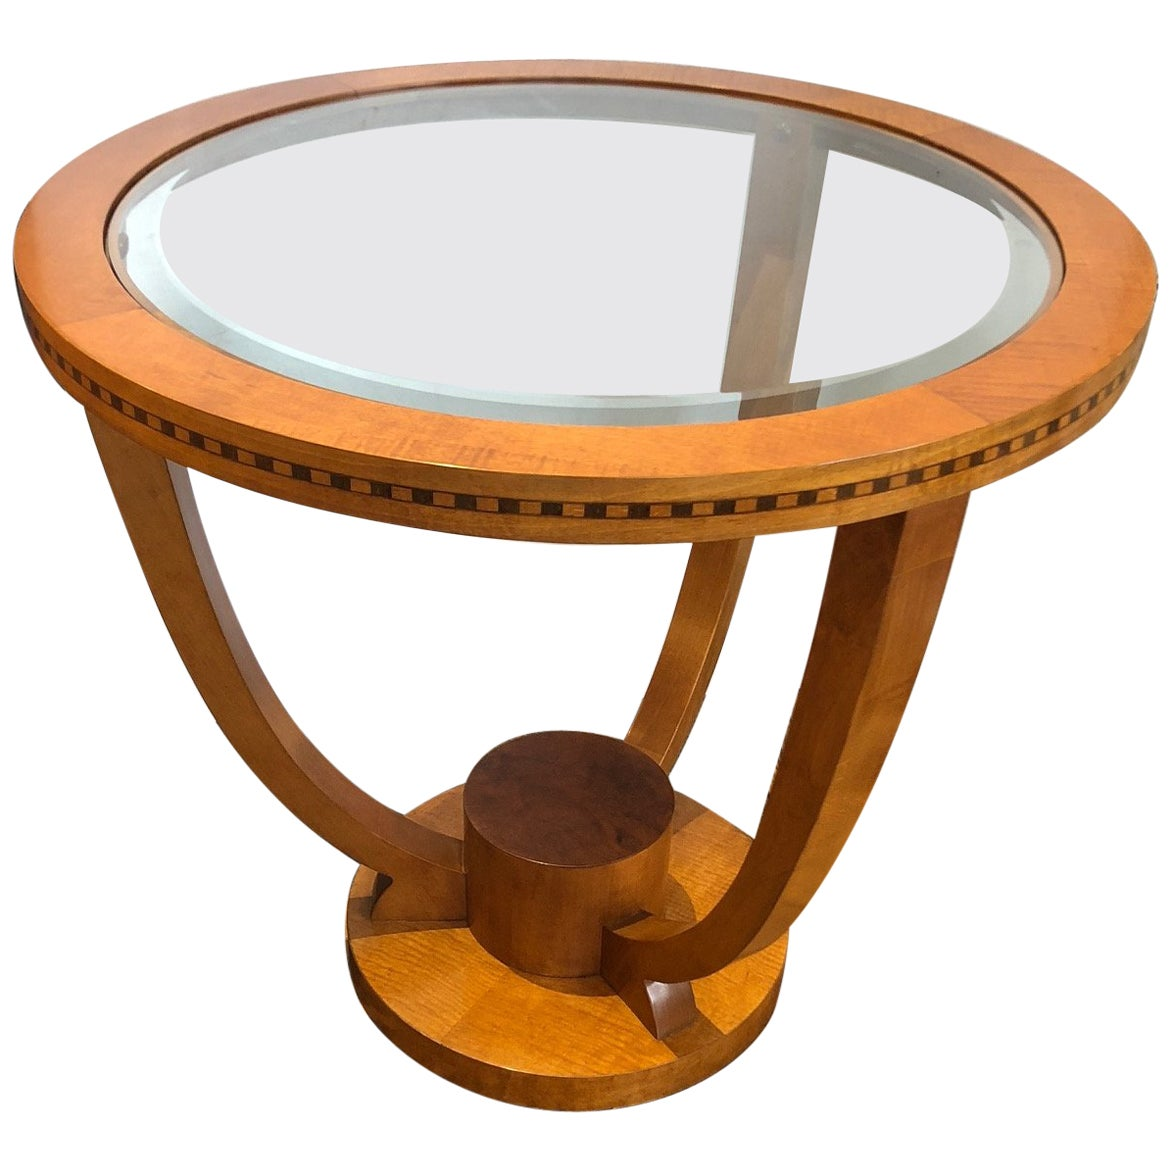 Classy Art Deco Style Round Side or End Table